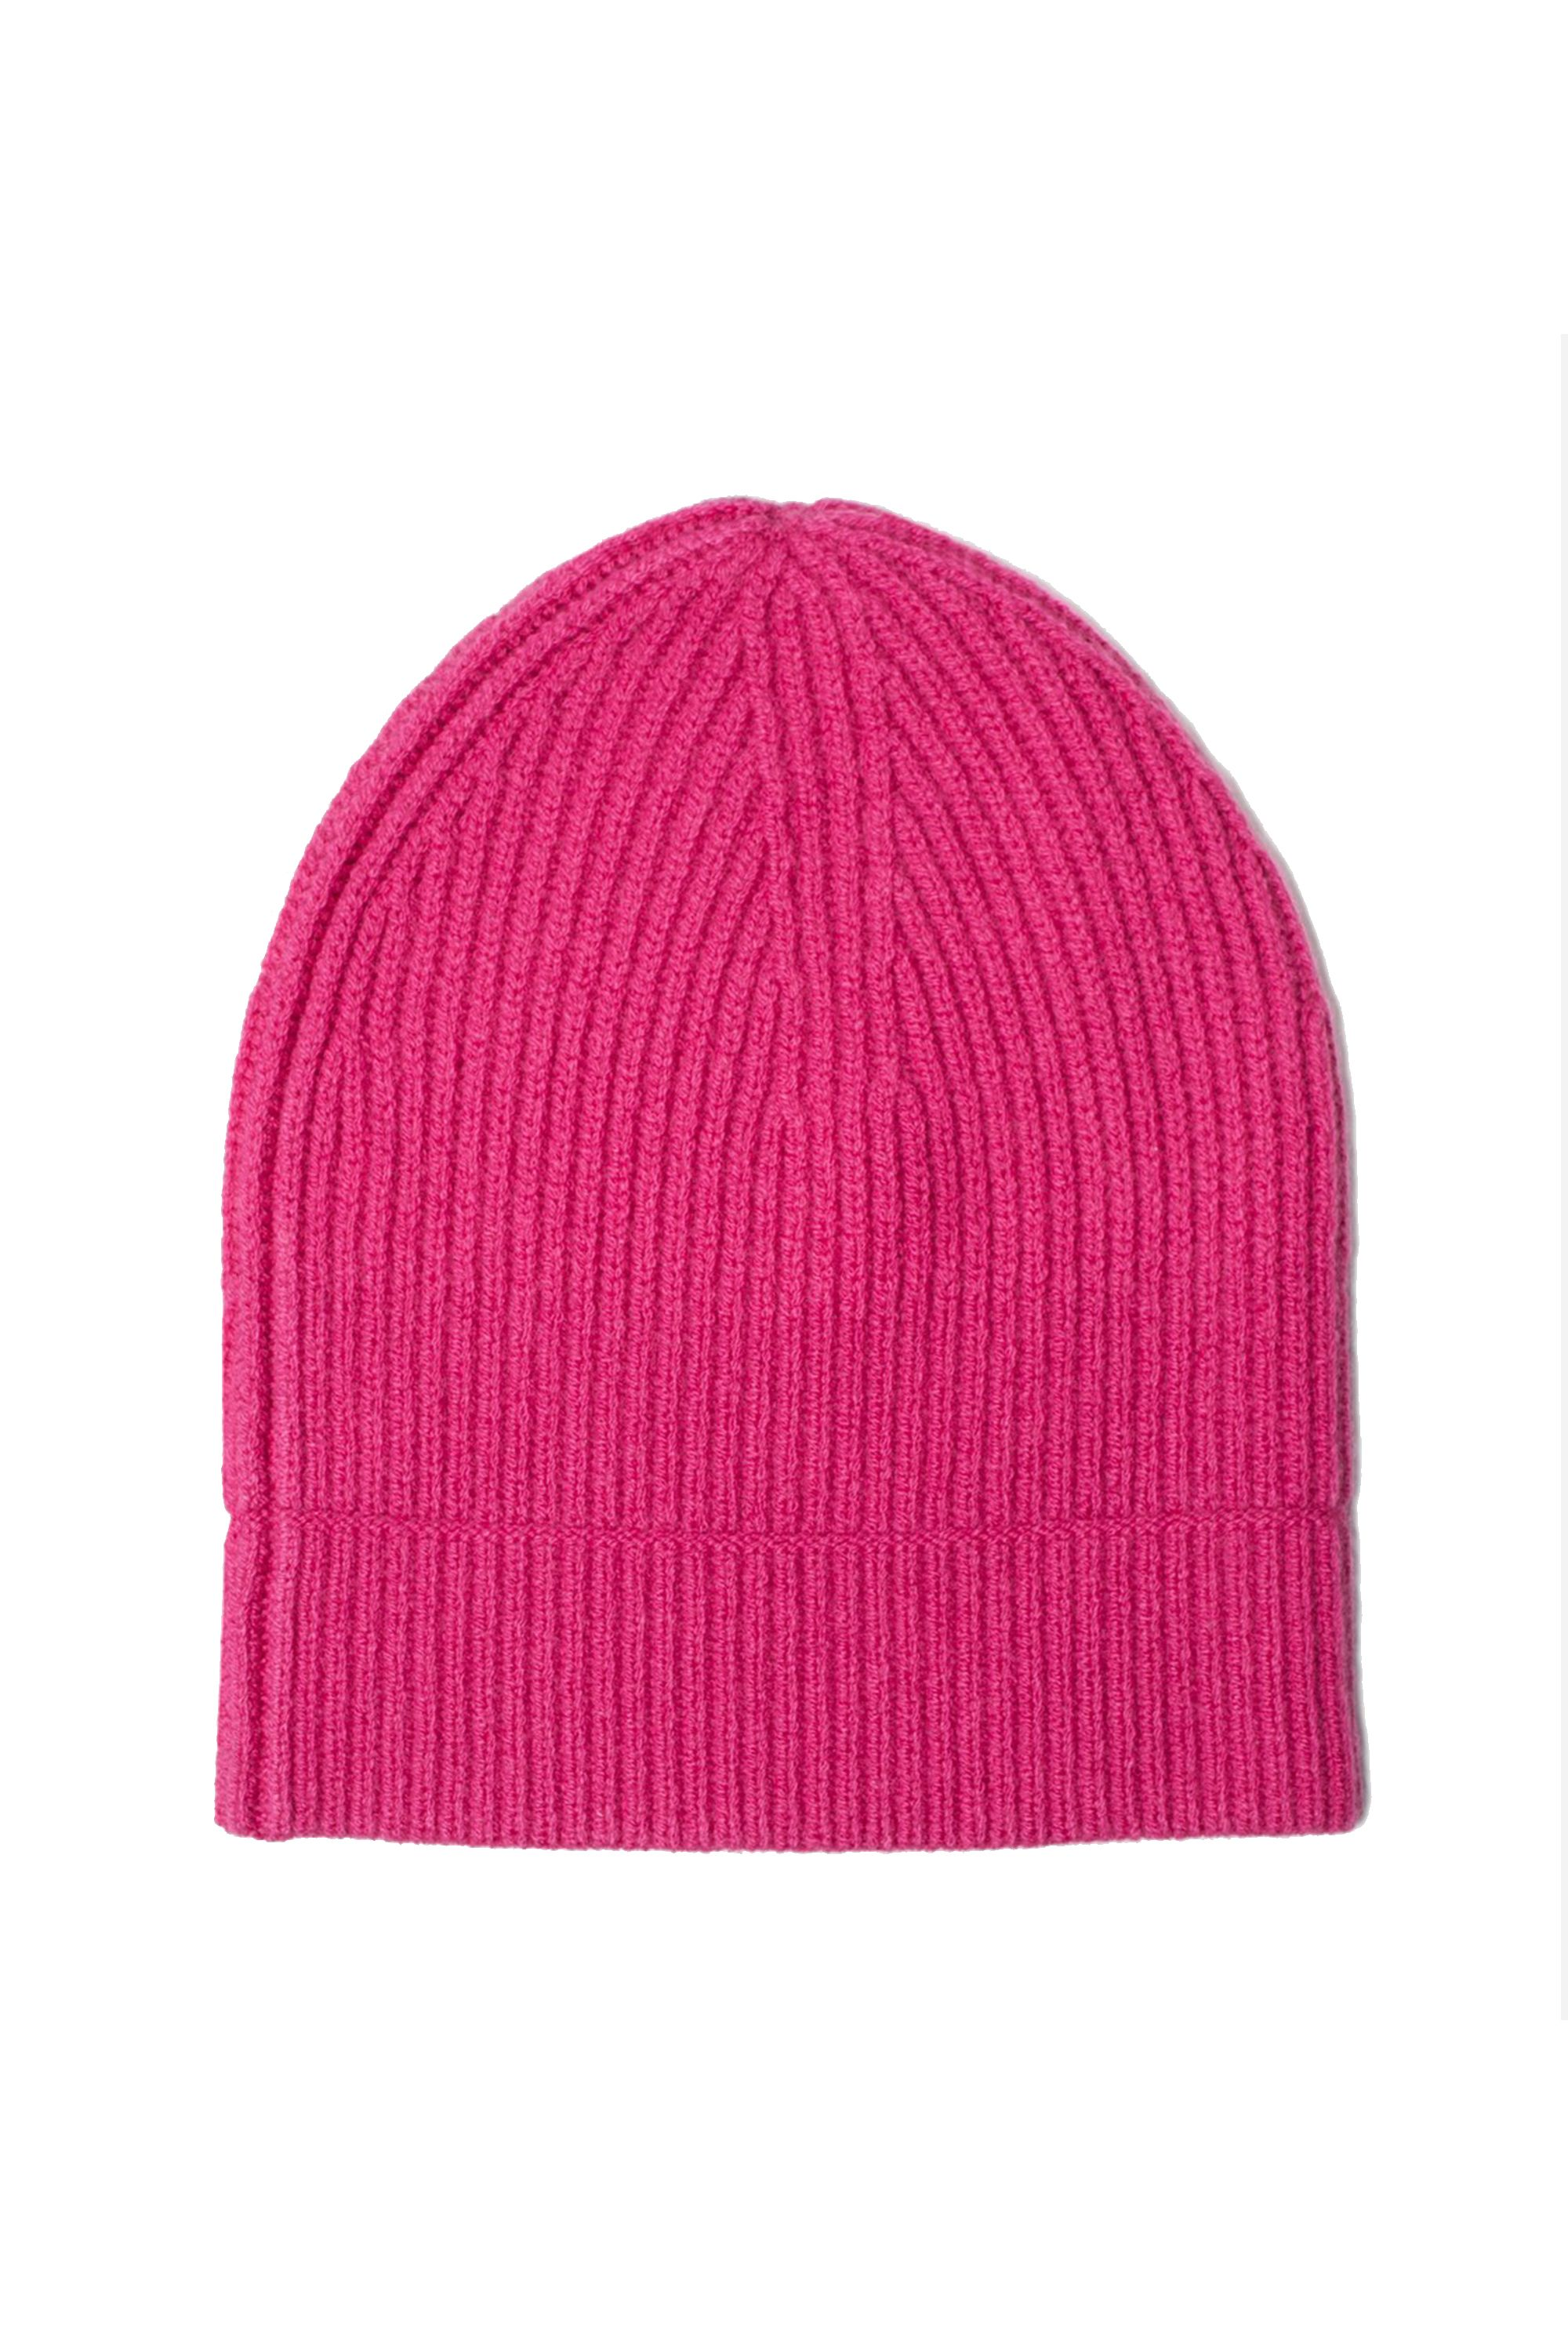 """<p>If your part of the country drops into the low double-digits during the winter, a hat is unofficially required. We love Everlane's high-quality, but wallet-friendly cashmere, and its beanie is perfection. Pick a fun color to brighten up your overall look. </p>  <p><em data-redactor-tag=""""em"""">Everlane Cashmere Beanie, $58; </em><a href=""""https://www.everlane.com/collections/womens-scarves-hats-gloves/products/womens-cashmere-beanie-azalea"""" target=""""_blank"""" data-tracking-id=""""recirc-text-link""""><em data-redactor-tag=""""em"""">everlane.com</em></a></p>"""